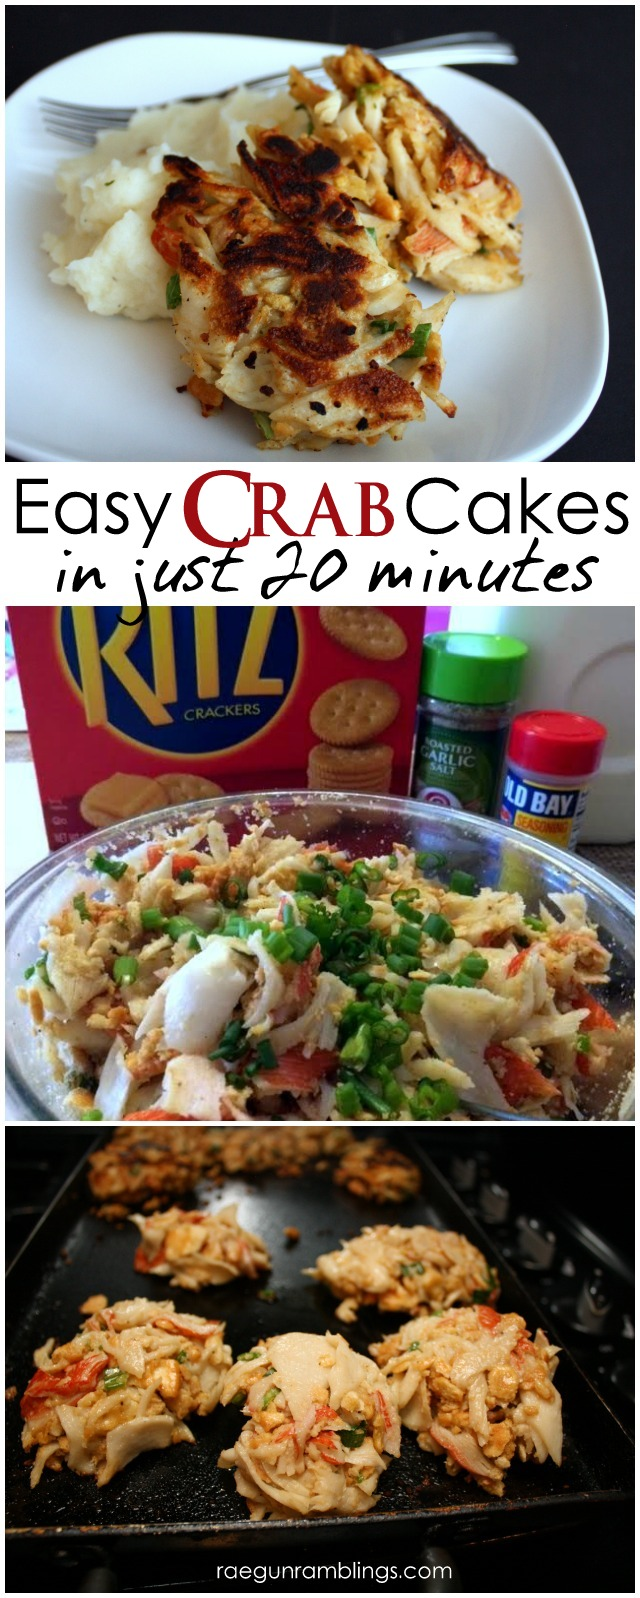 Yummy 20 minute crab cakes perfect for an easy dinner or as part of a party spread - Rae Gun Ramblings